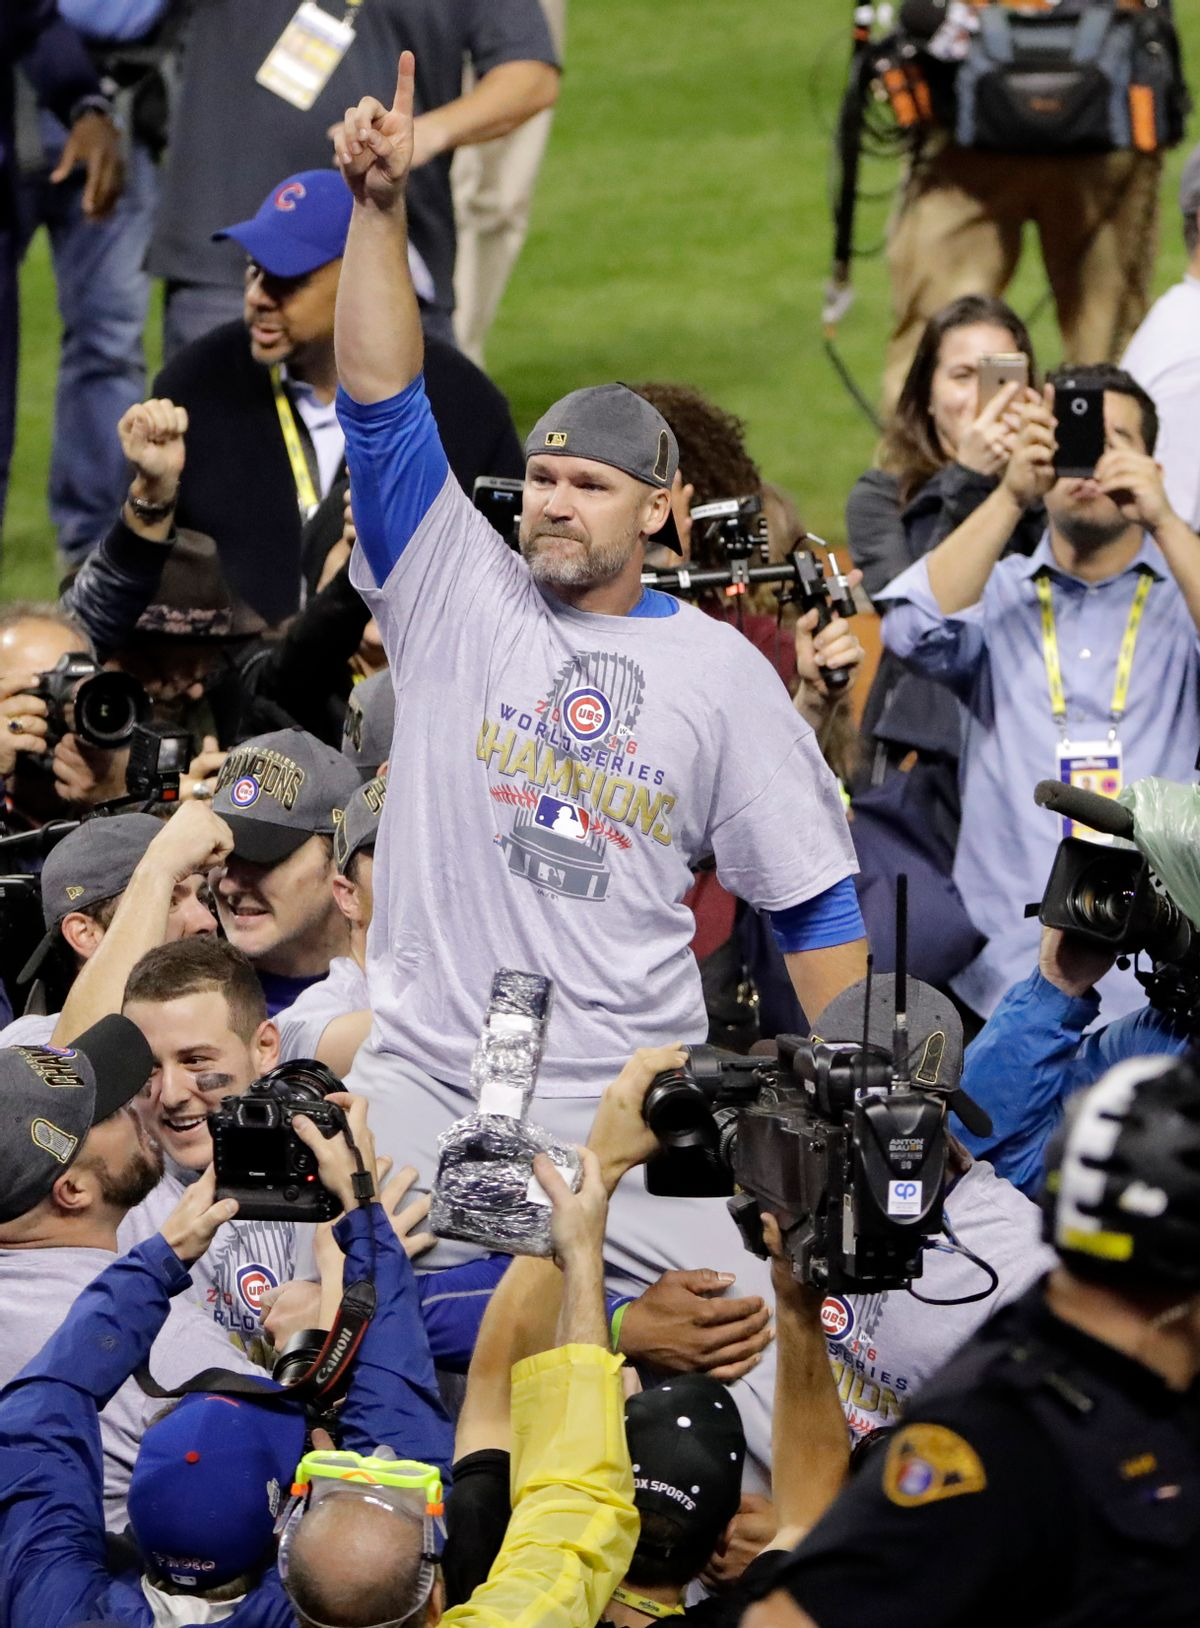 Chicago Cubs' David Ross is carried by teammates after Game 7 of the Major League Baseball World Series against the Cleveland Indians Thursday, Nov. 3, 2016, in Cleveland. The Cubs won 8-7 in 10 innings to win the series 4-3. (AP Photo/Gene J. Puskar) (AP)